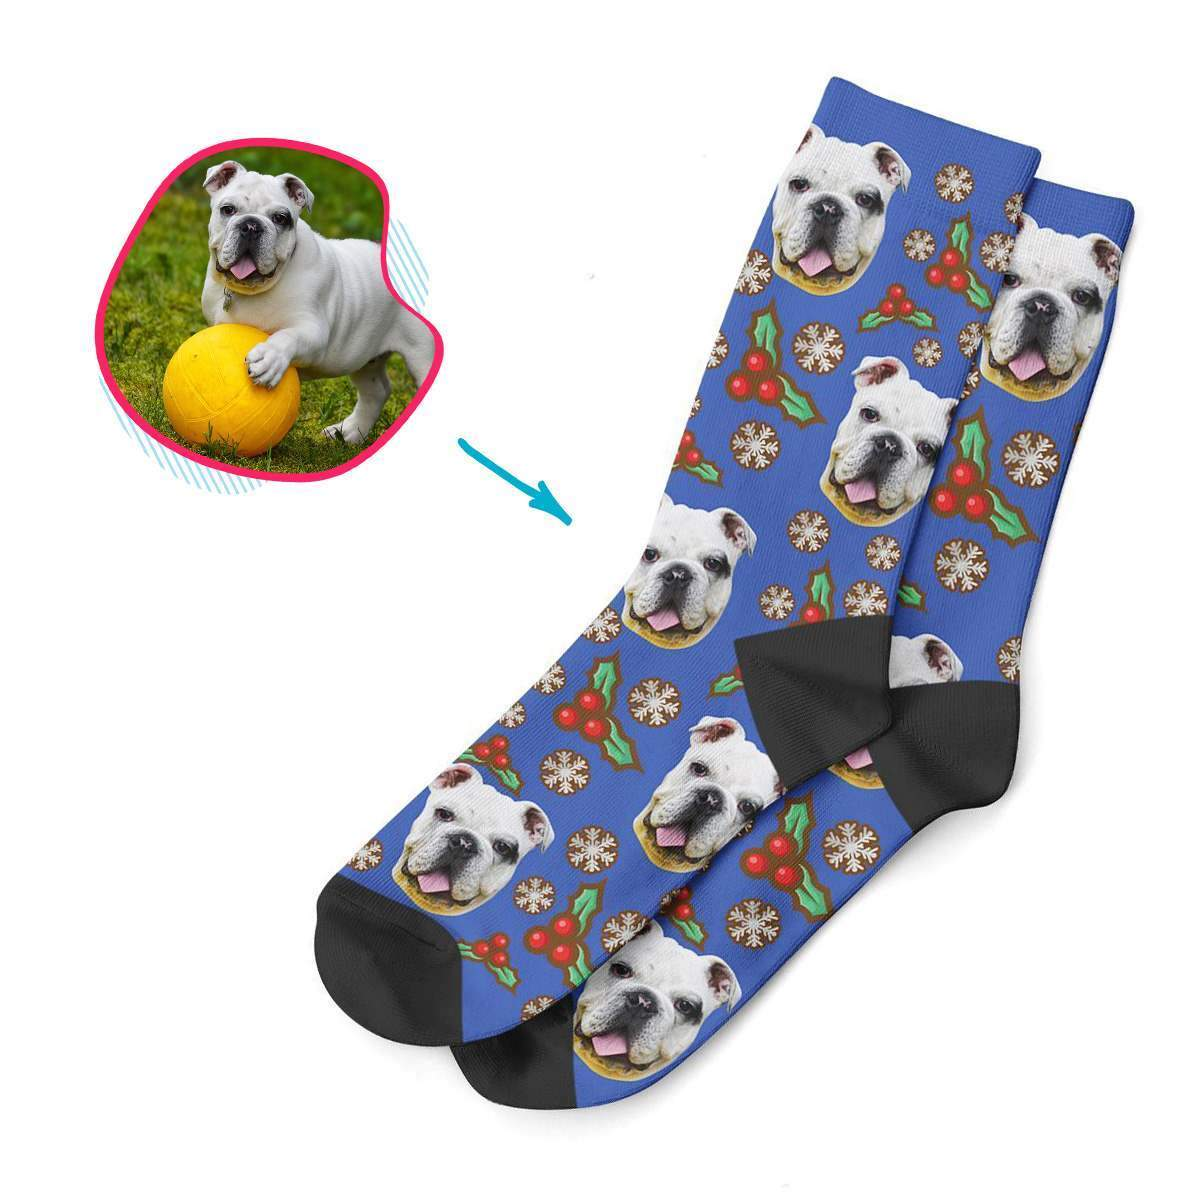 darkblue Mistletoe socks personalized with photo of face printed on them